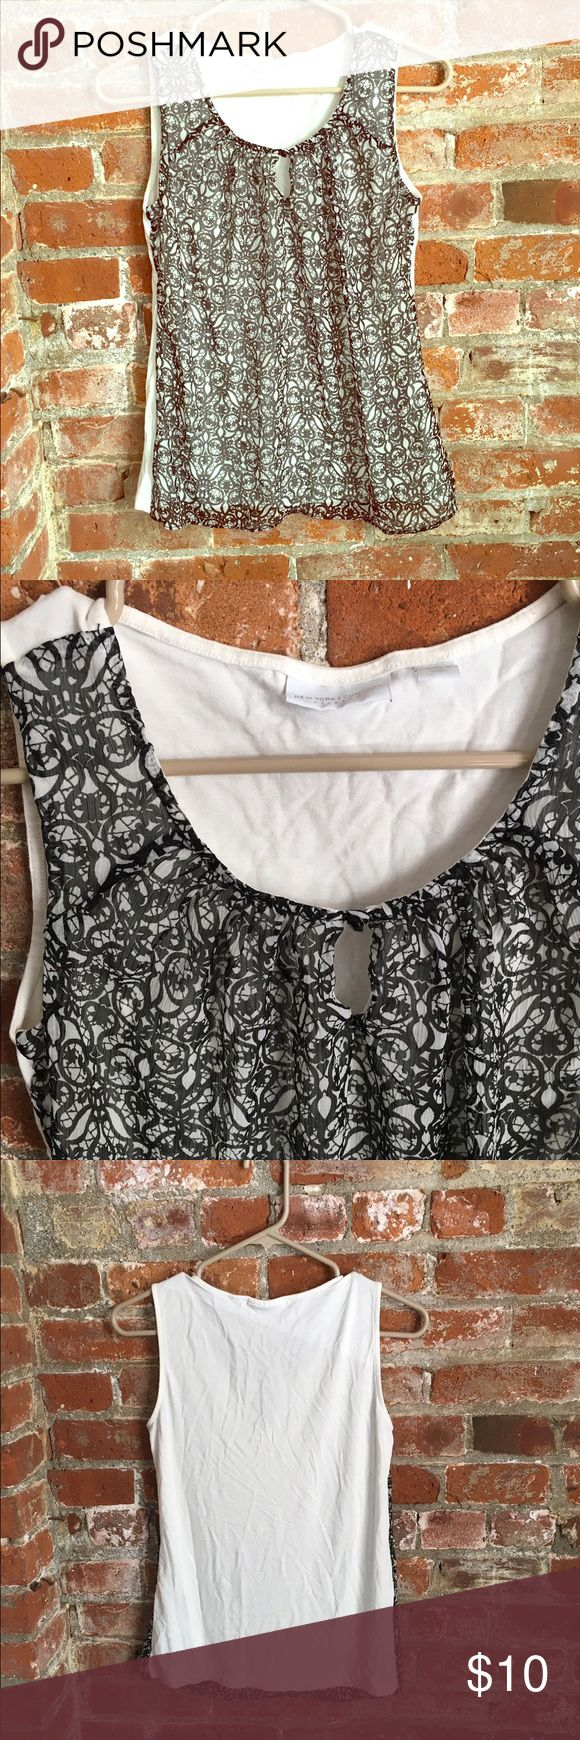 Black & white Cami top New York & company black and white Cami. Perfect for under a blazer or sweater. Decorative front and solid white back size small. Wore only once New York & Company Tops Camisoles